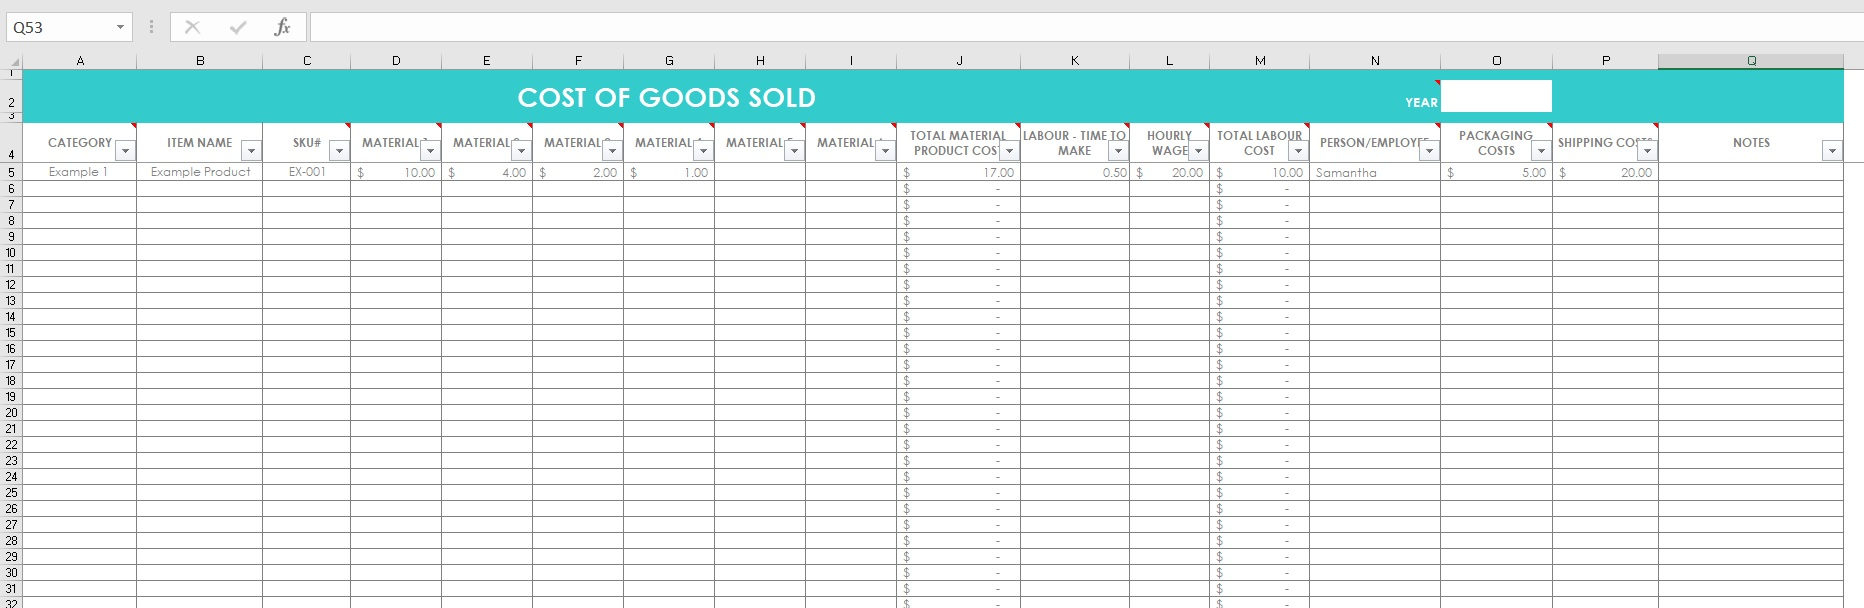 Essential Oil Inventory Spreadsheet Intended For Cost Of Goods Sold Inventory Spreadsheet Etsy Seller Tool Shop  Etsy